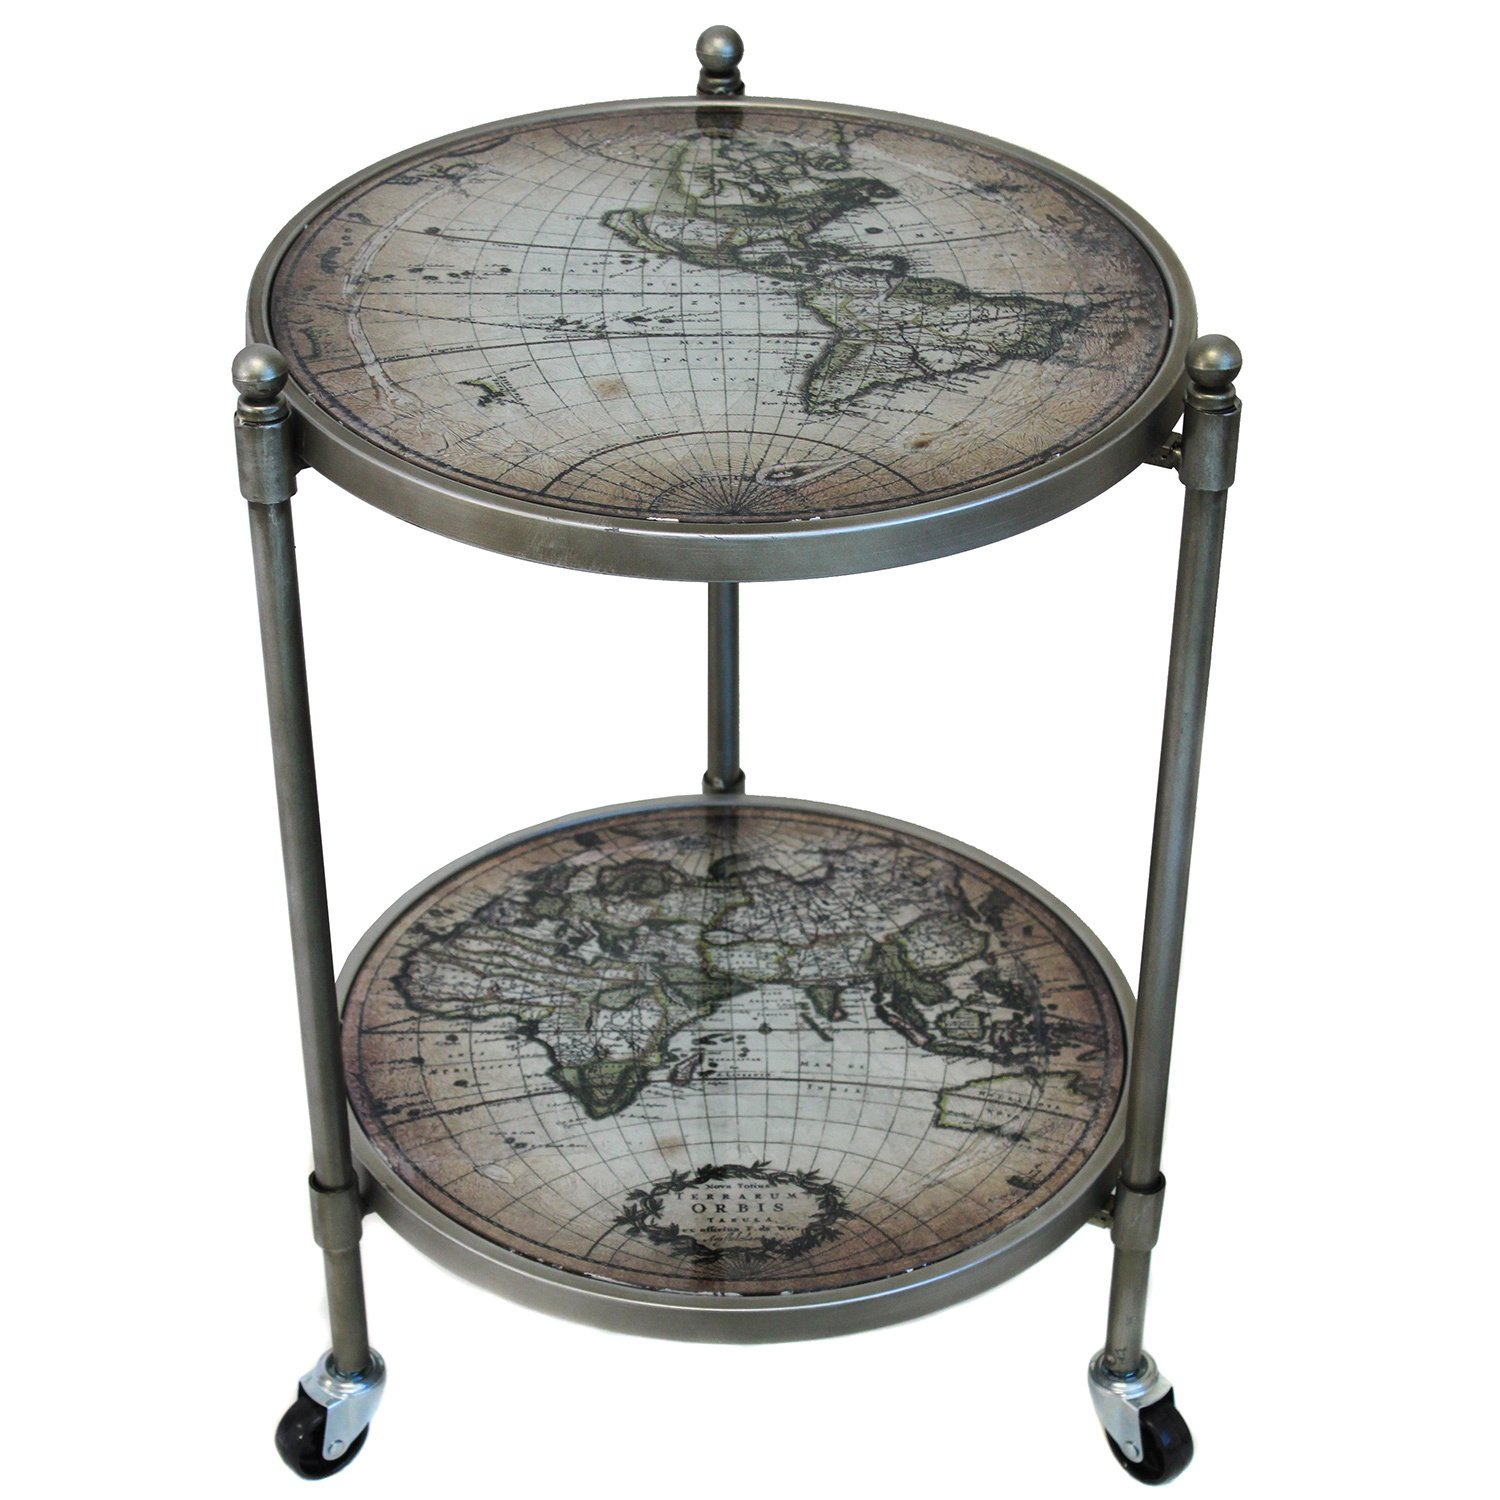 world globe wheeled accent table free shipping today with wheels small half moon console colorful end tables round glass nest outdoor furniture chairs oak dining tiny bedside all